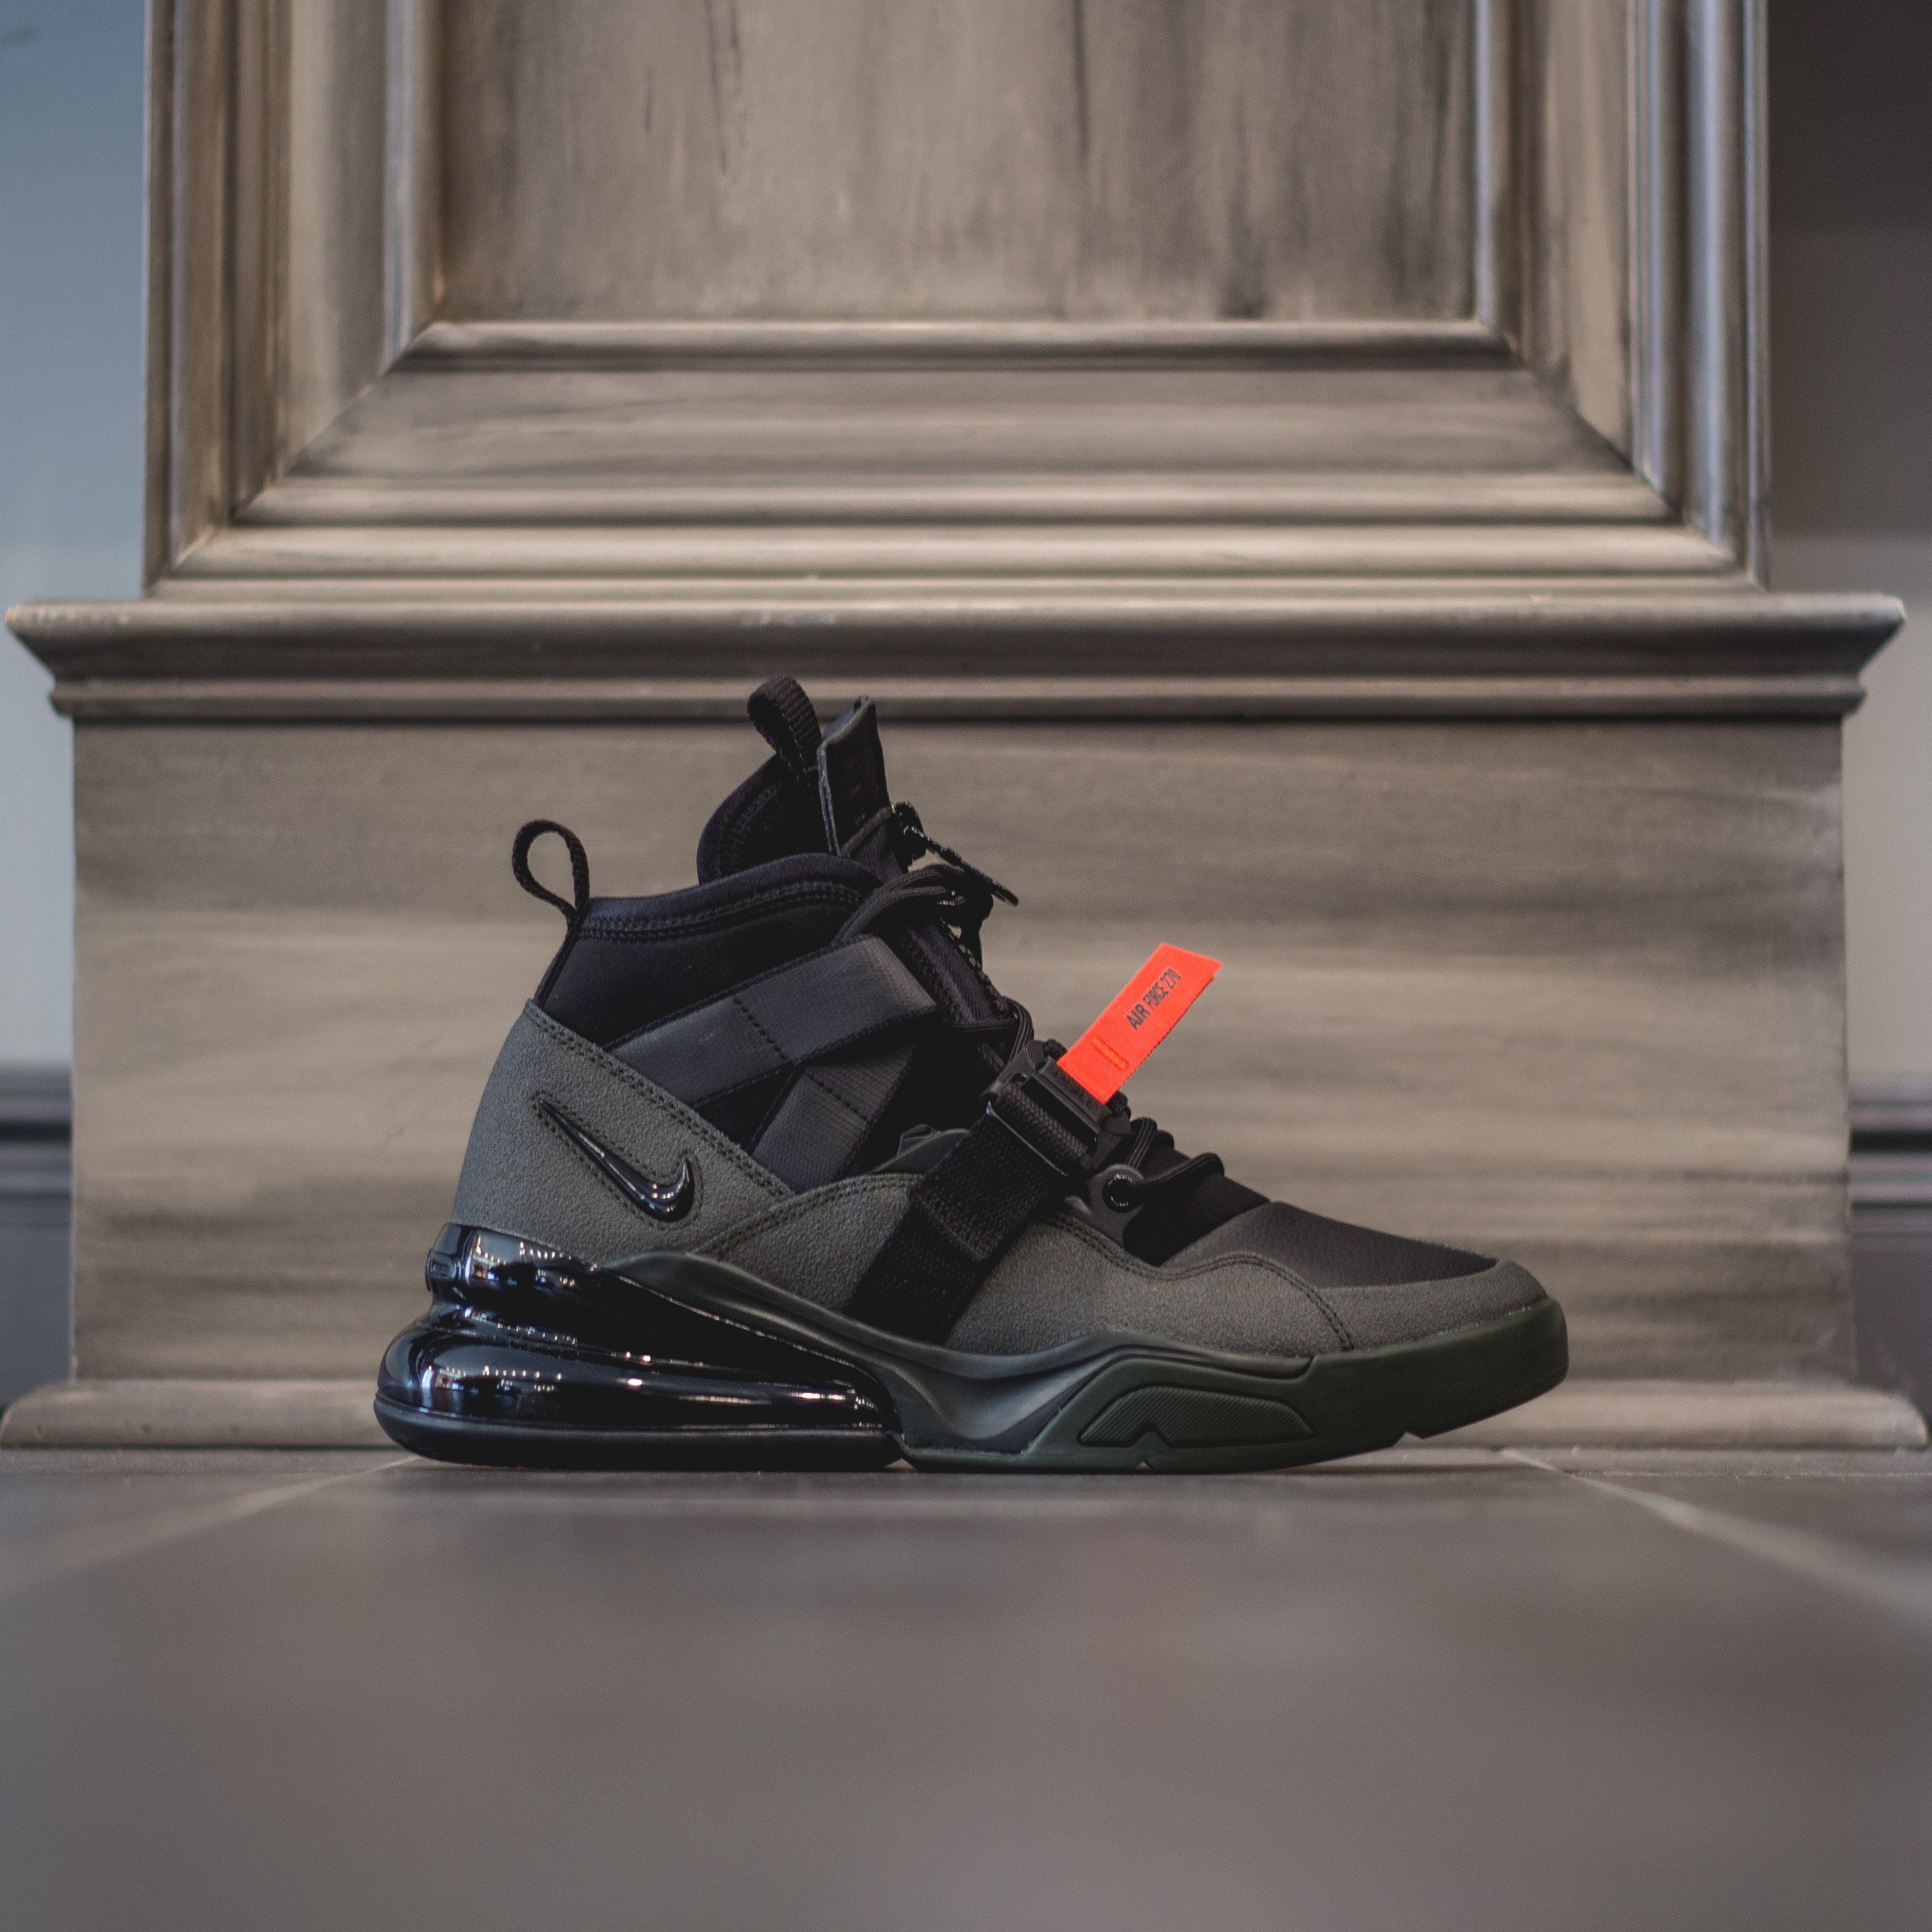 59e8c135cb8b NIKE Air Force 270 Utility - Sequoia Black Habanero-Red in 2019 ...